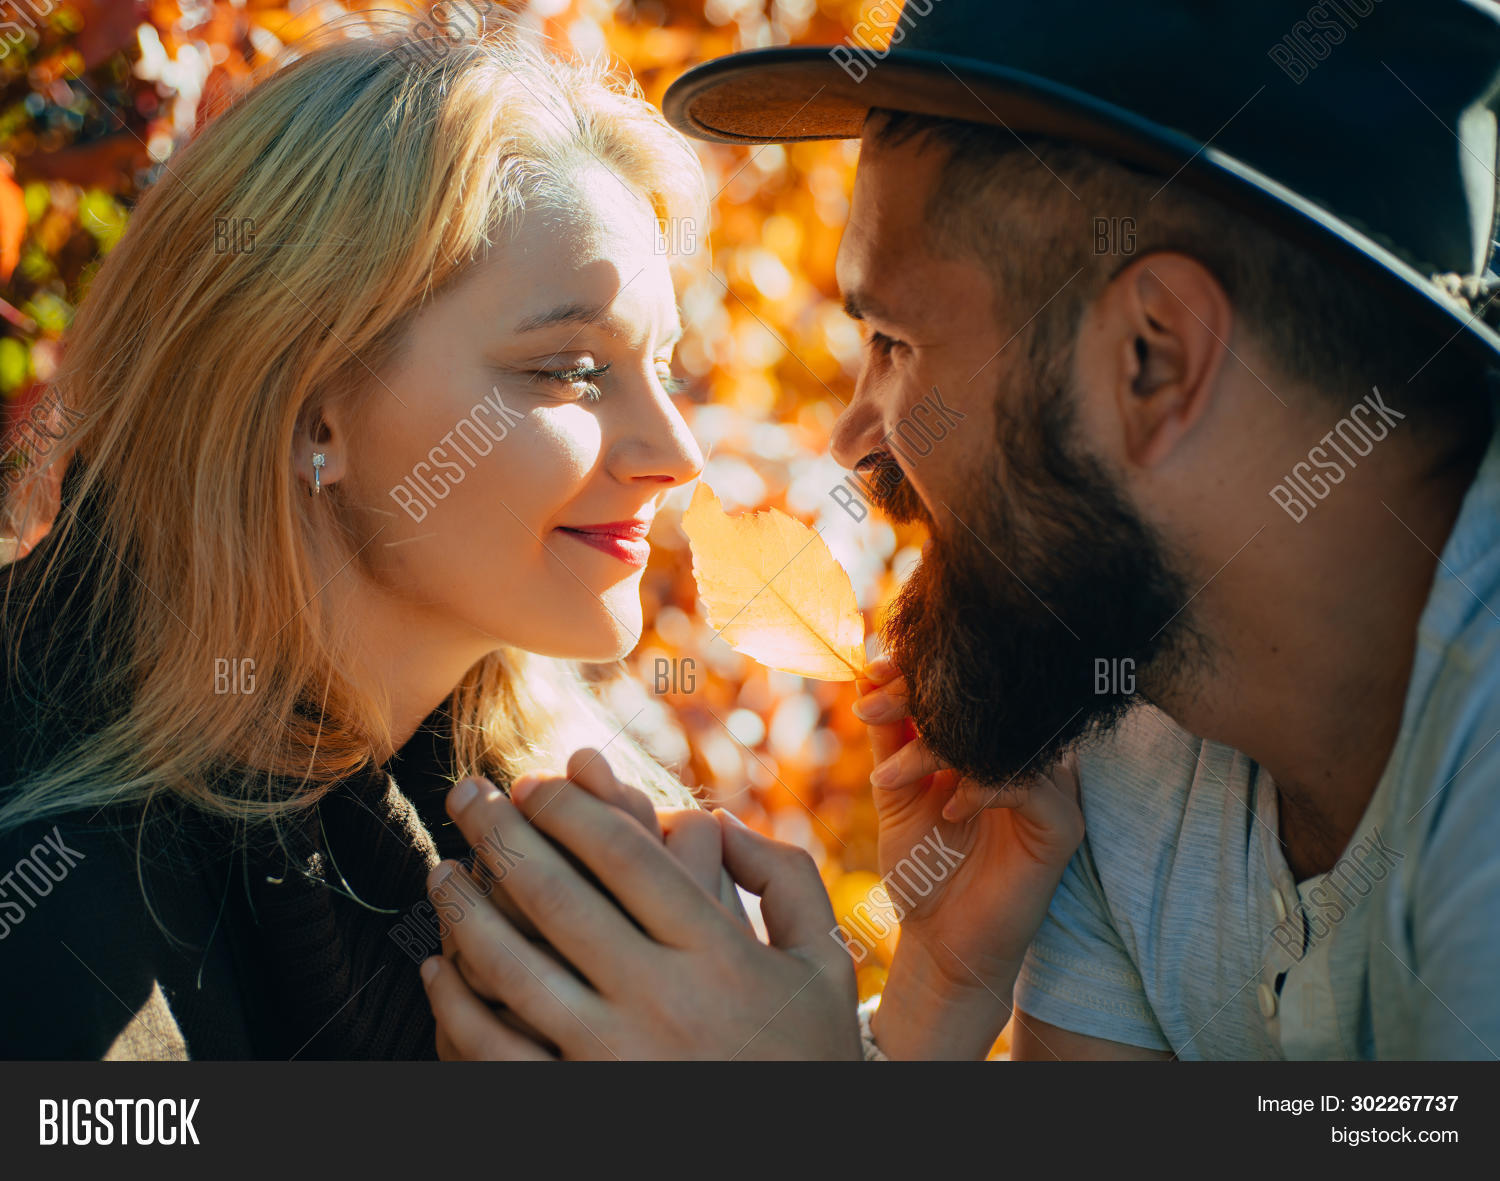 adorable,adult,air,background,beard,bearded,blonde,celebration,close,couple,cute,date,defocused,each,faces,family,feelings,handsome,happy,hipster,holiday,intimacy,love,lovely,lovers,man,mustache,nature,other,pretty,radiate,relations,relationship,smiling,soulmate,tender,they,true,unshaven,up,valentine,warmth,woman